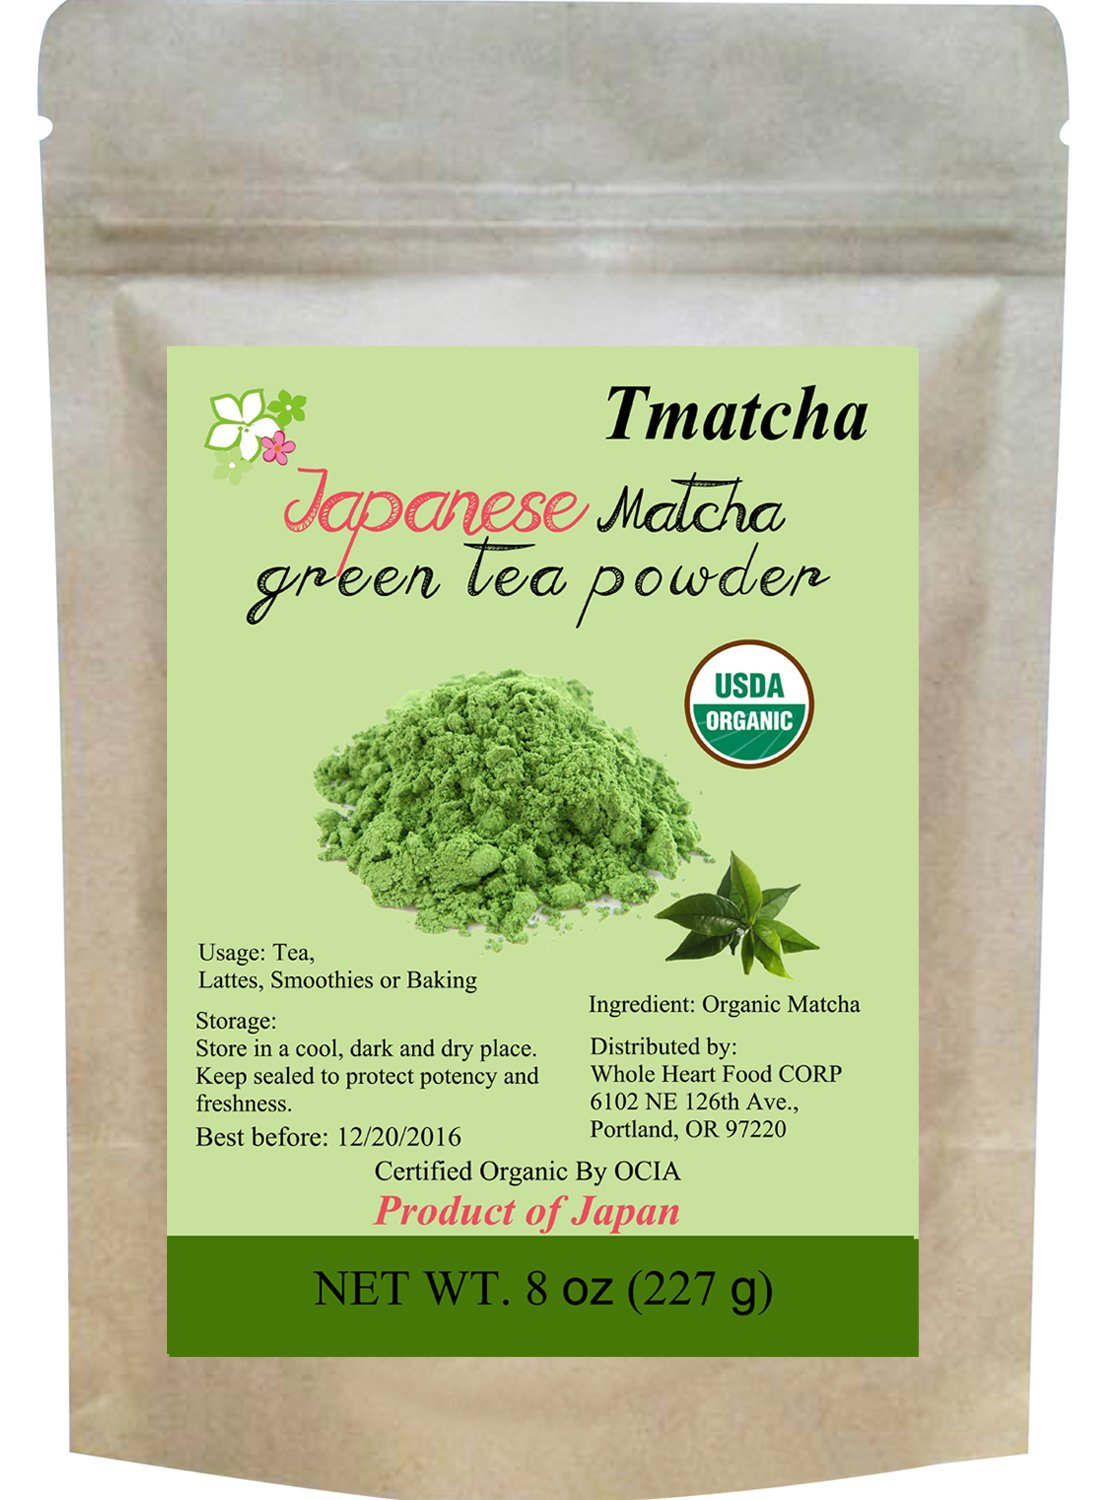 Tmatcha Organic Japanese Matcha Green Tea Powder USDA Organic Certified Culinary Grade 8oz